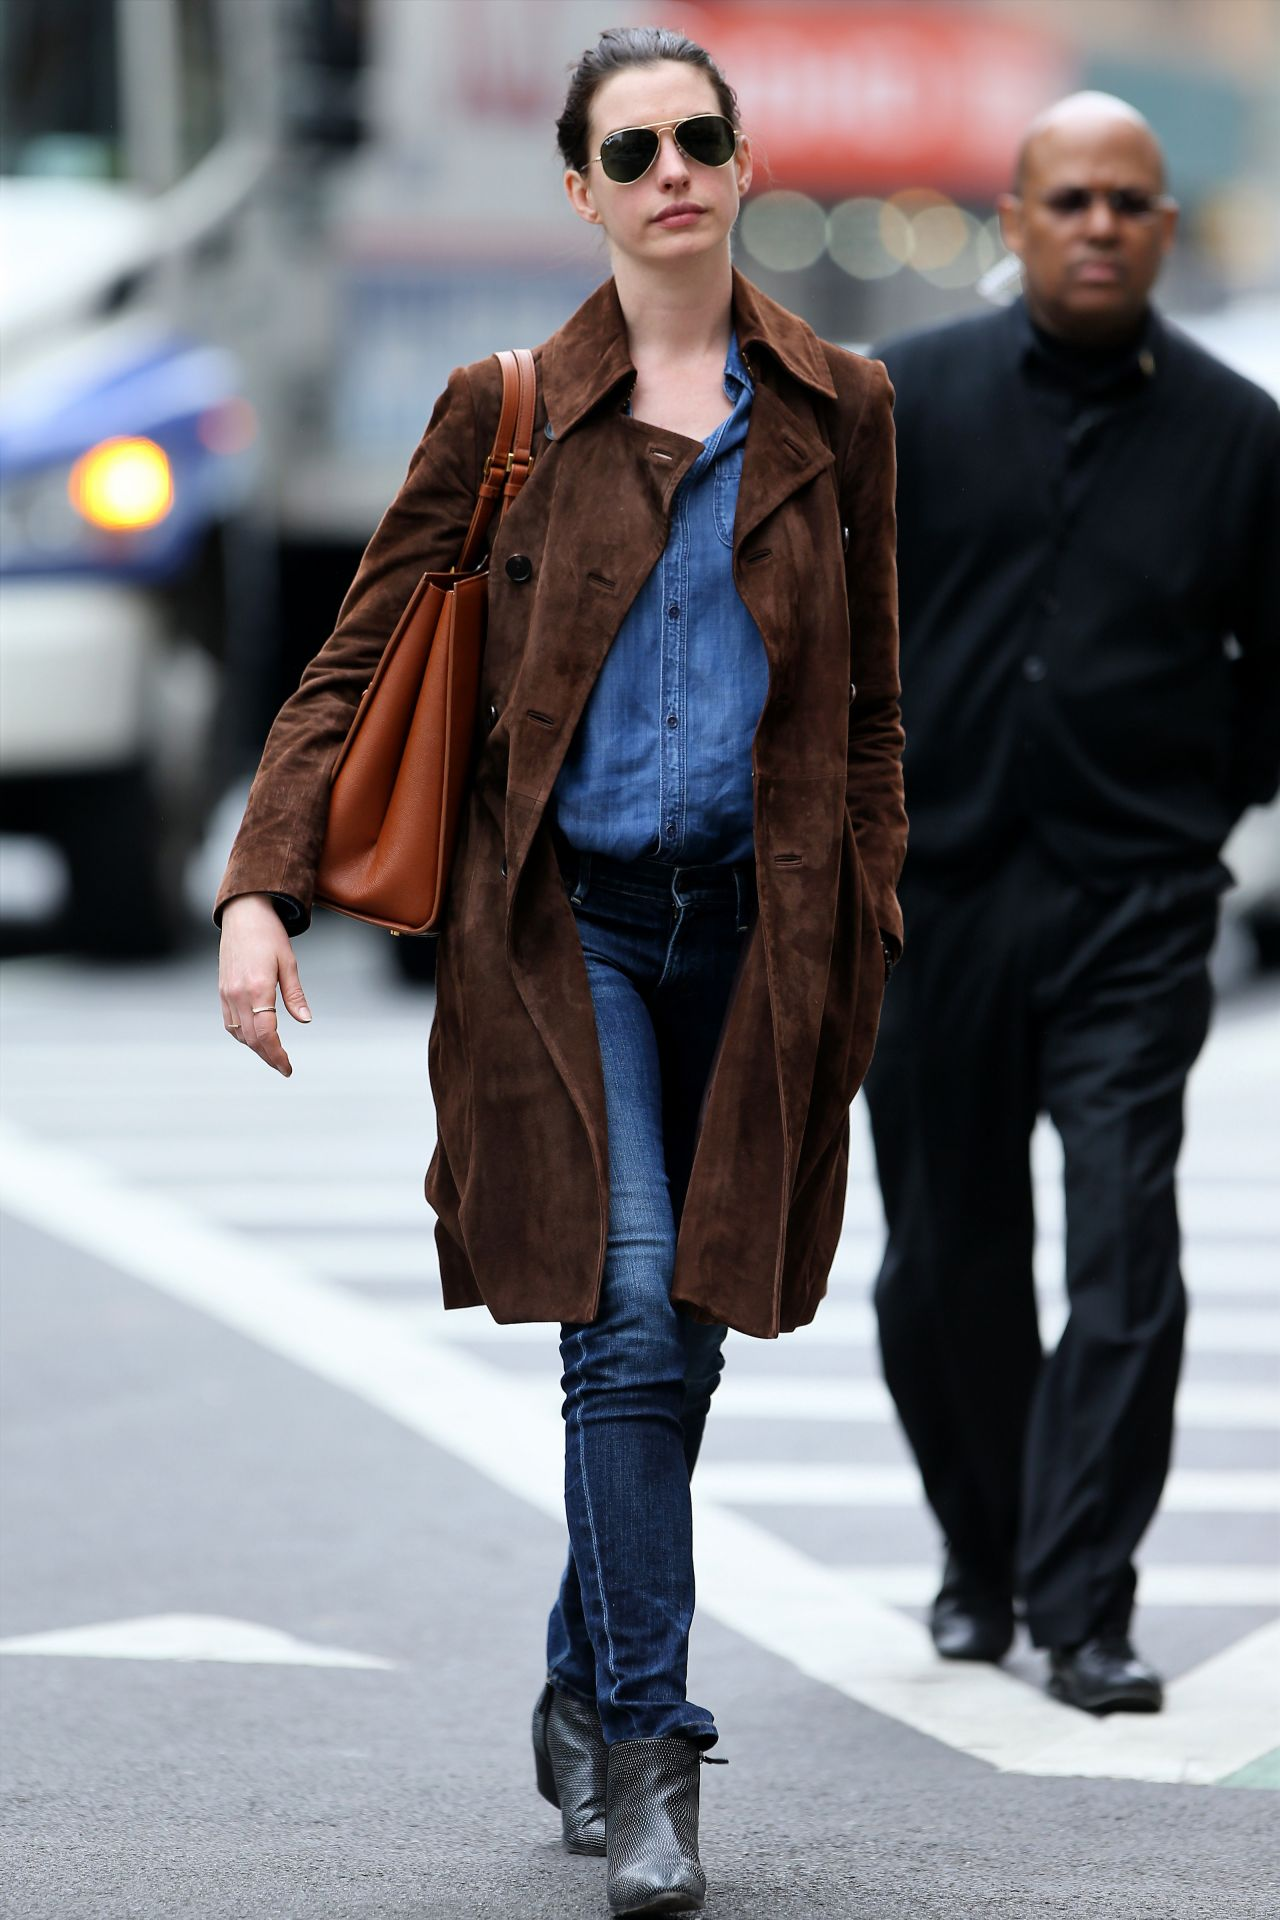 anne hathaway casual style - photo #8